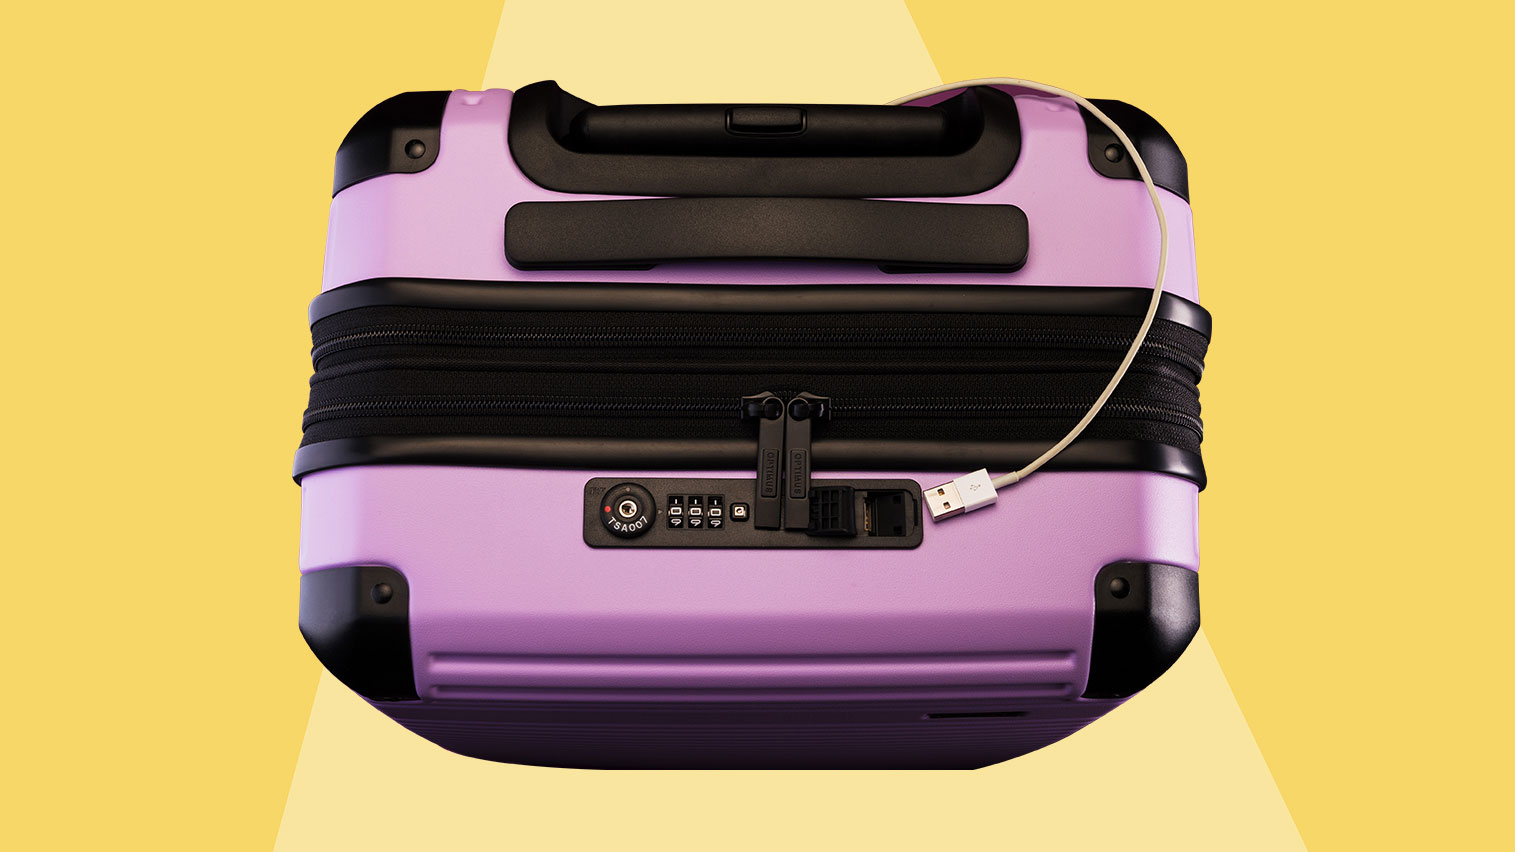 Optimus Luggage Review: First-person review of the Optimus carry on suitcase